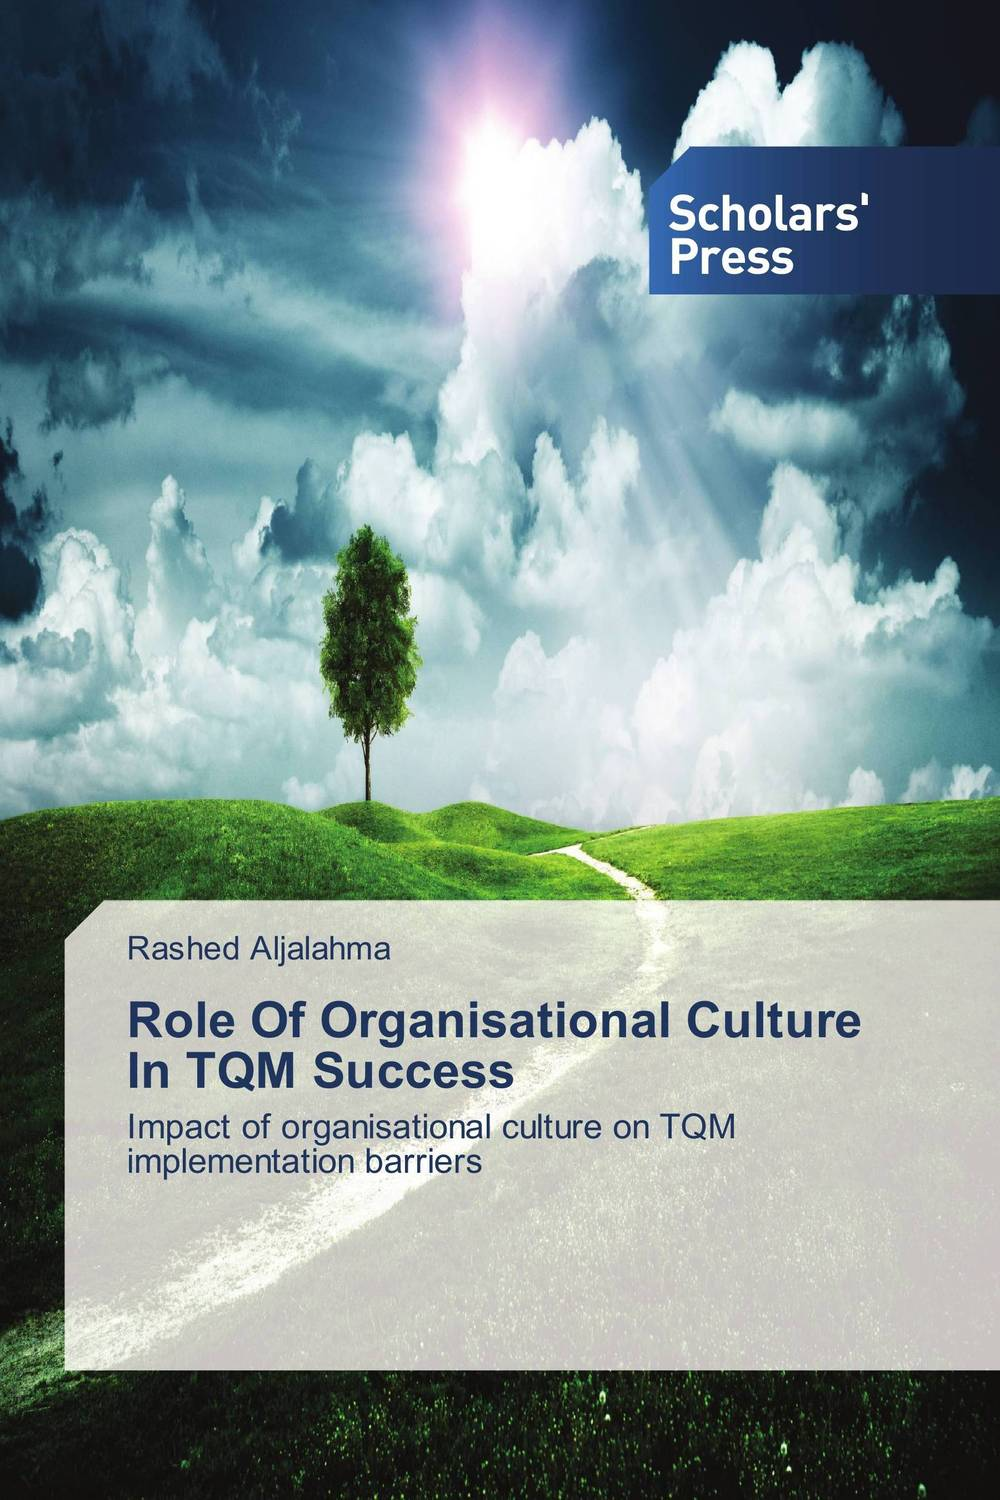 Role Of Organisational Culture In TQM Success boris collardi f j private banking building a culture of excellence